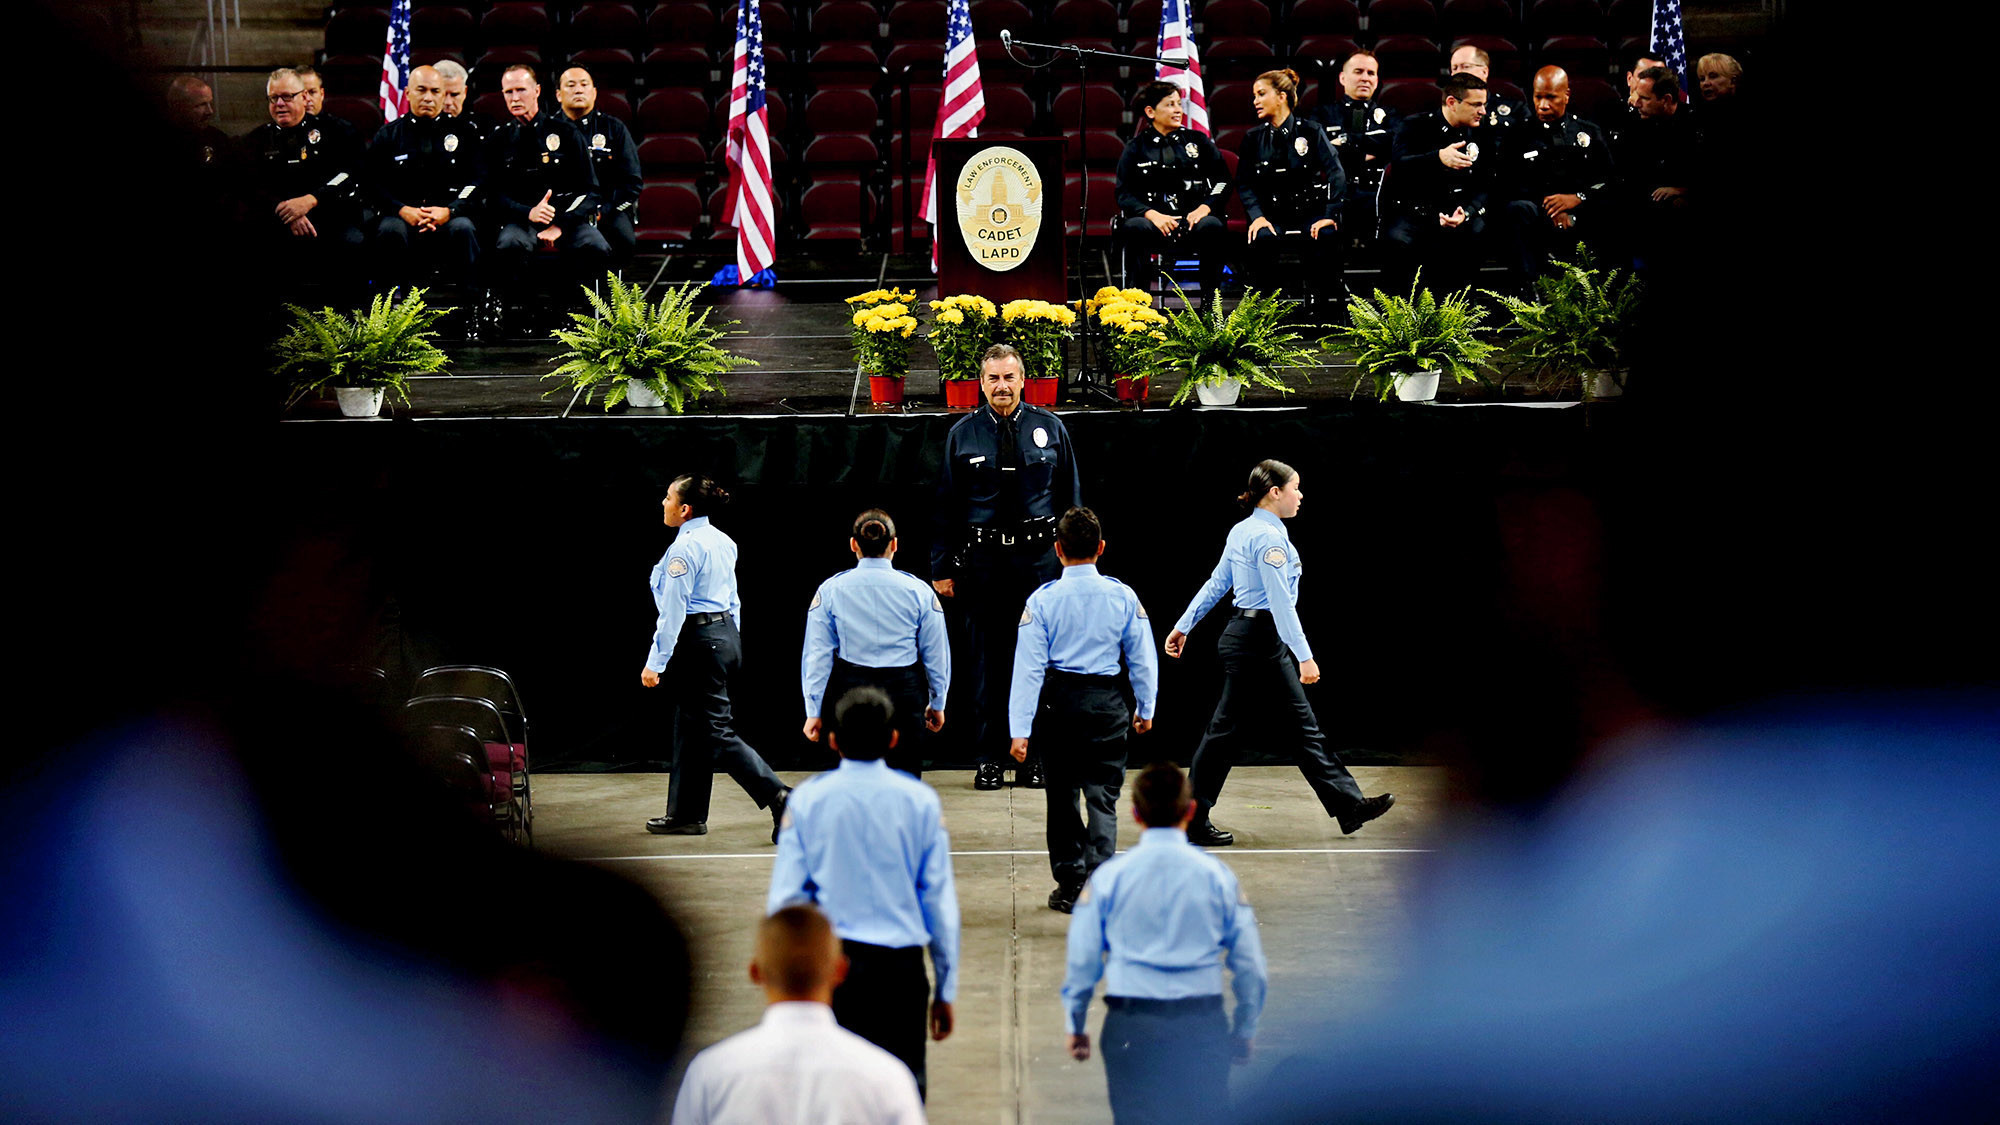 'Protect them like your own': At cadet graduation, LAPD Chief Beck defends program amid scandal